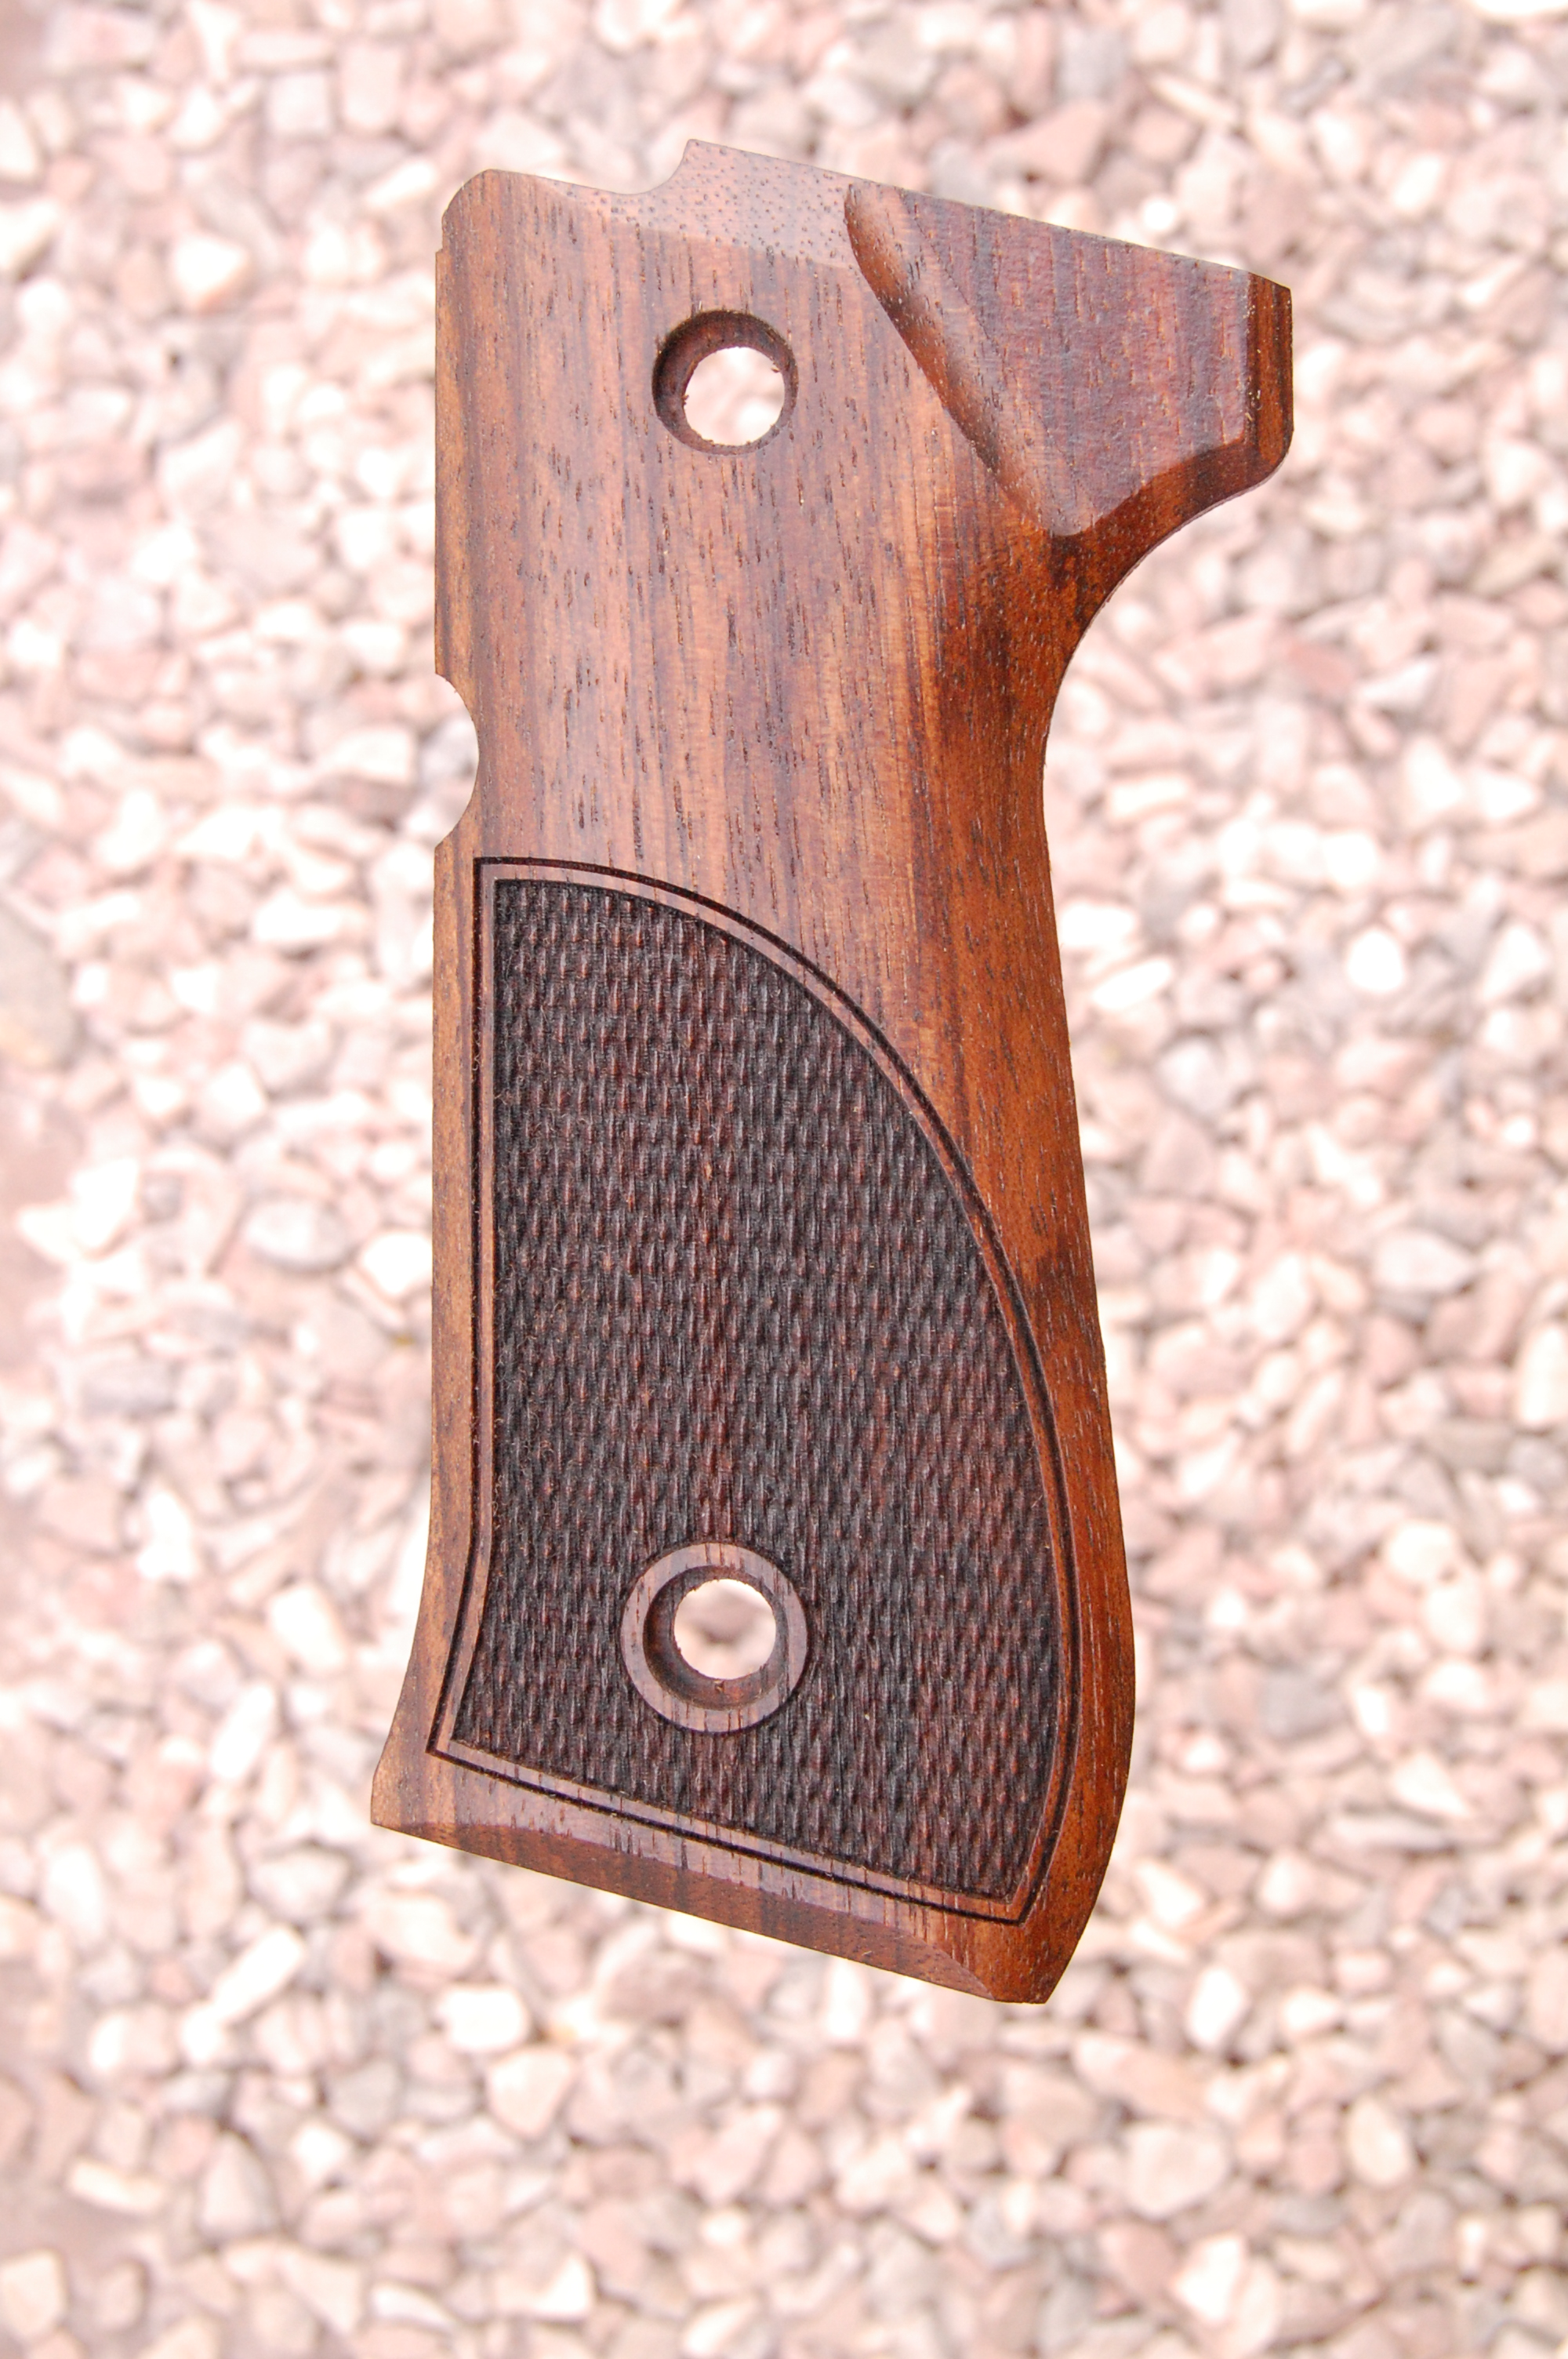 BERETTA 92/96 grips (partially checkered) - full size